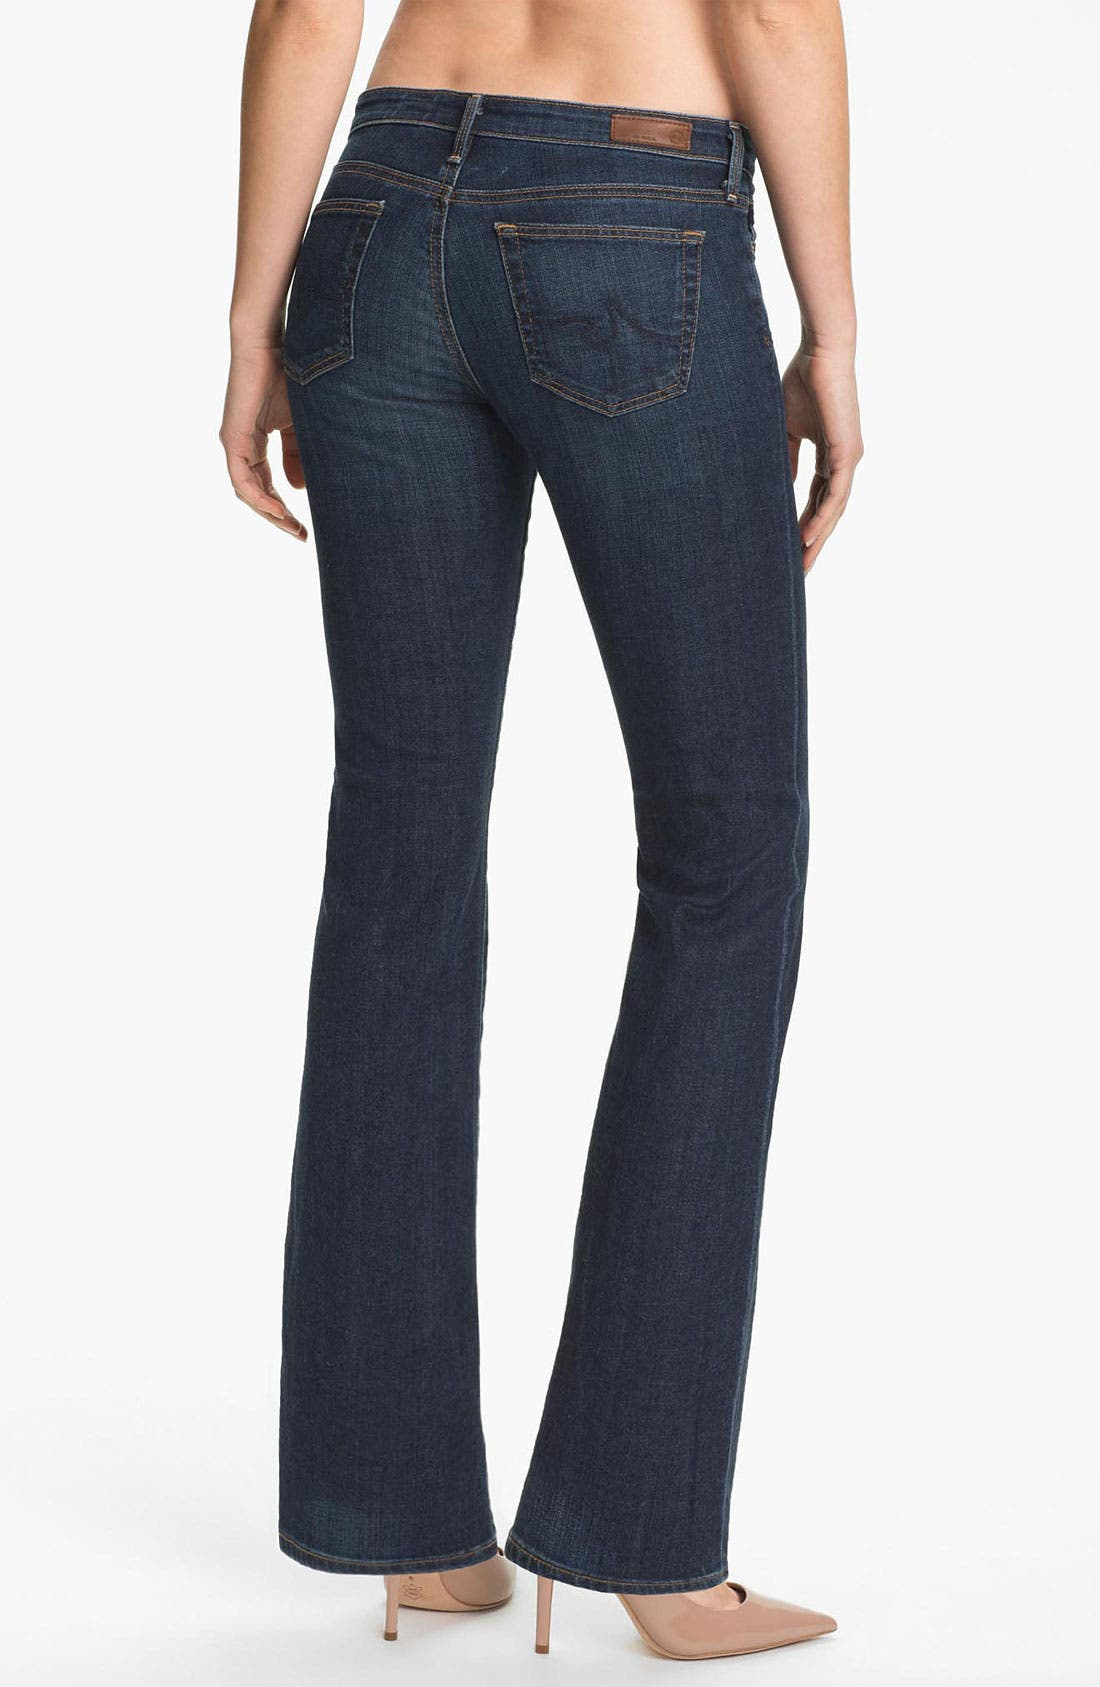 Alternate Image 2  - AG Jeans 'Angelina' Bootcut Jeans (Blue Brush) (Petite)